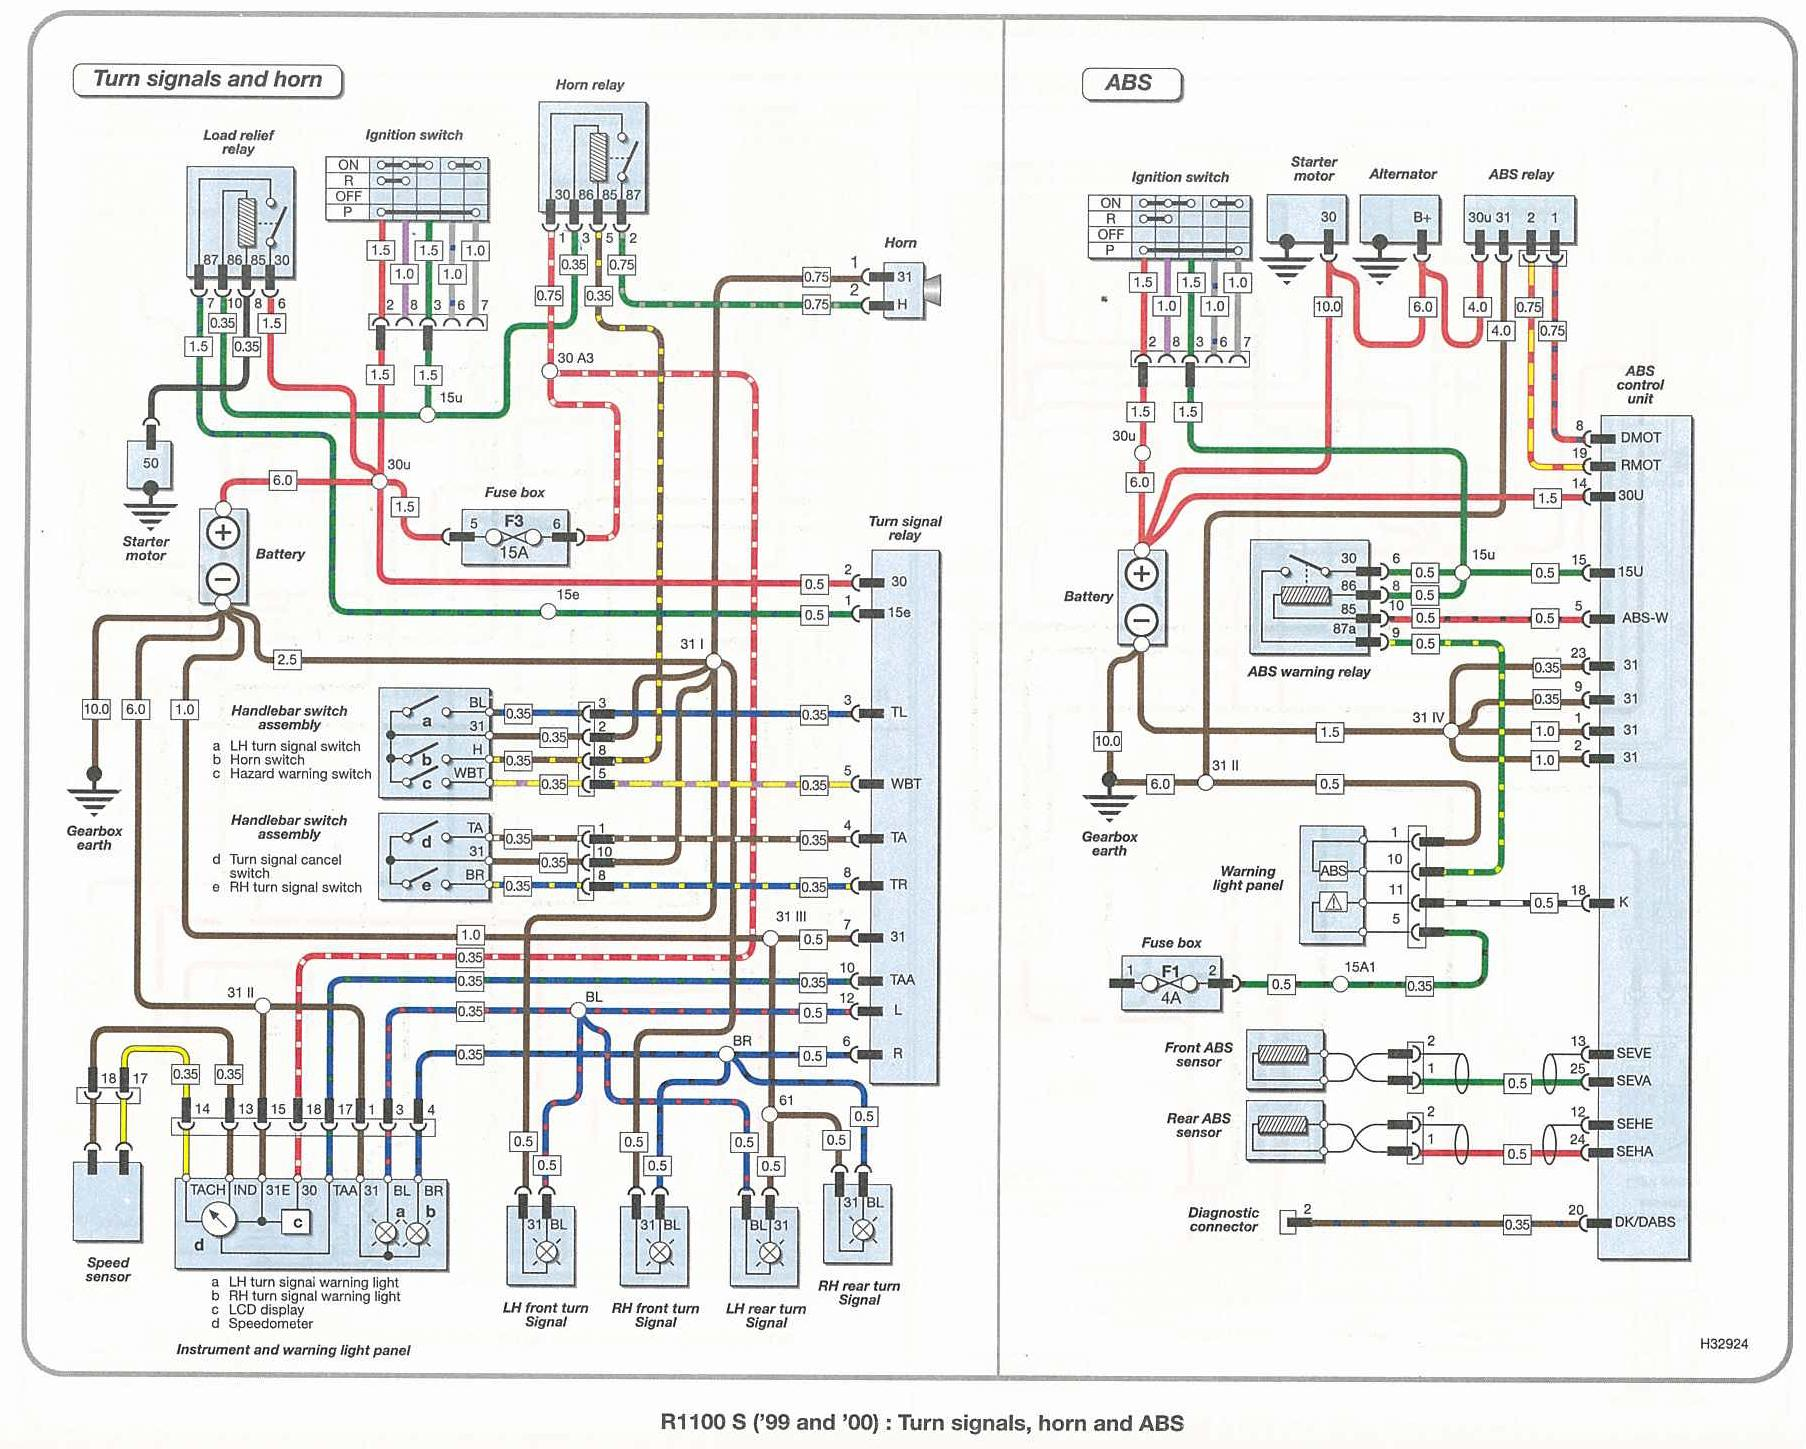 wiring03 e46 m3 wiring diagram e46 transmission diagram \u2022 free wiring BMW 2002 Tail Light at bakdesigns.co